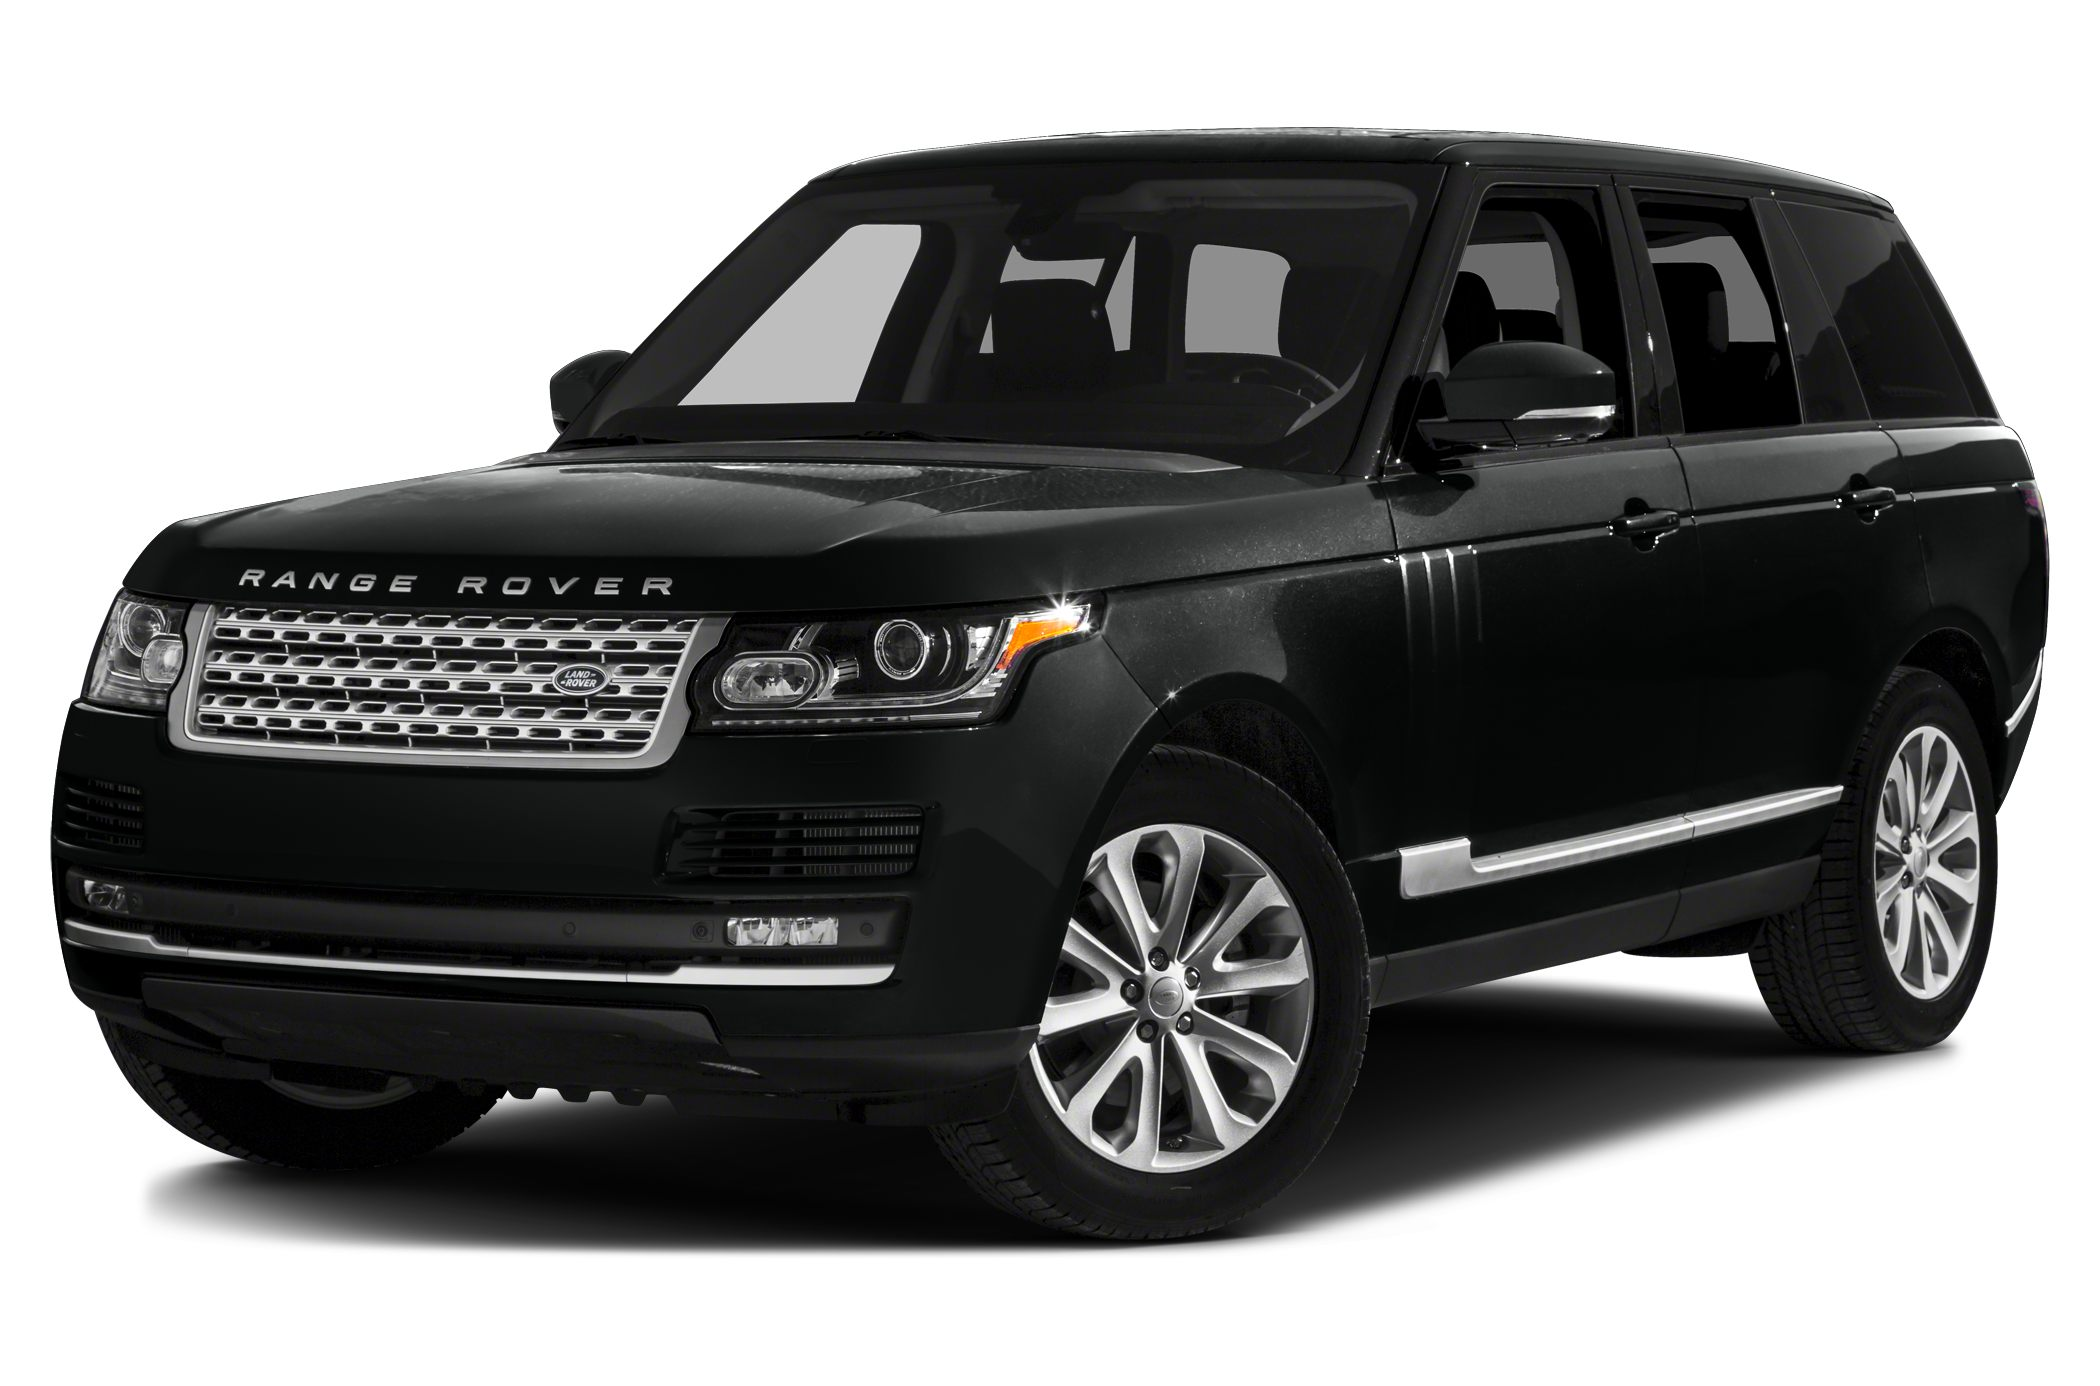 2015 Land Rover Range Rover 3.0L Supercharged HSE SUV for sale in Dallas for $99,920 with 22 miles.